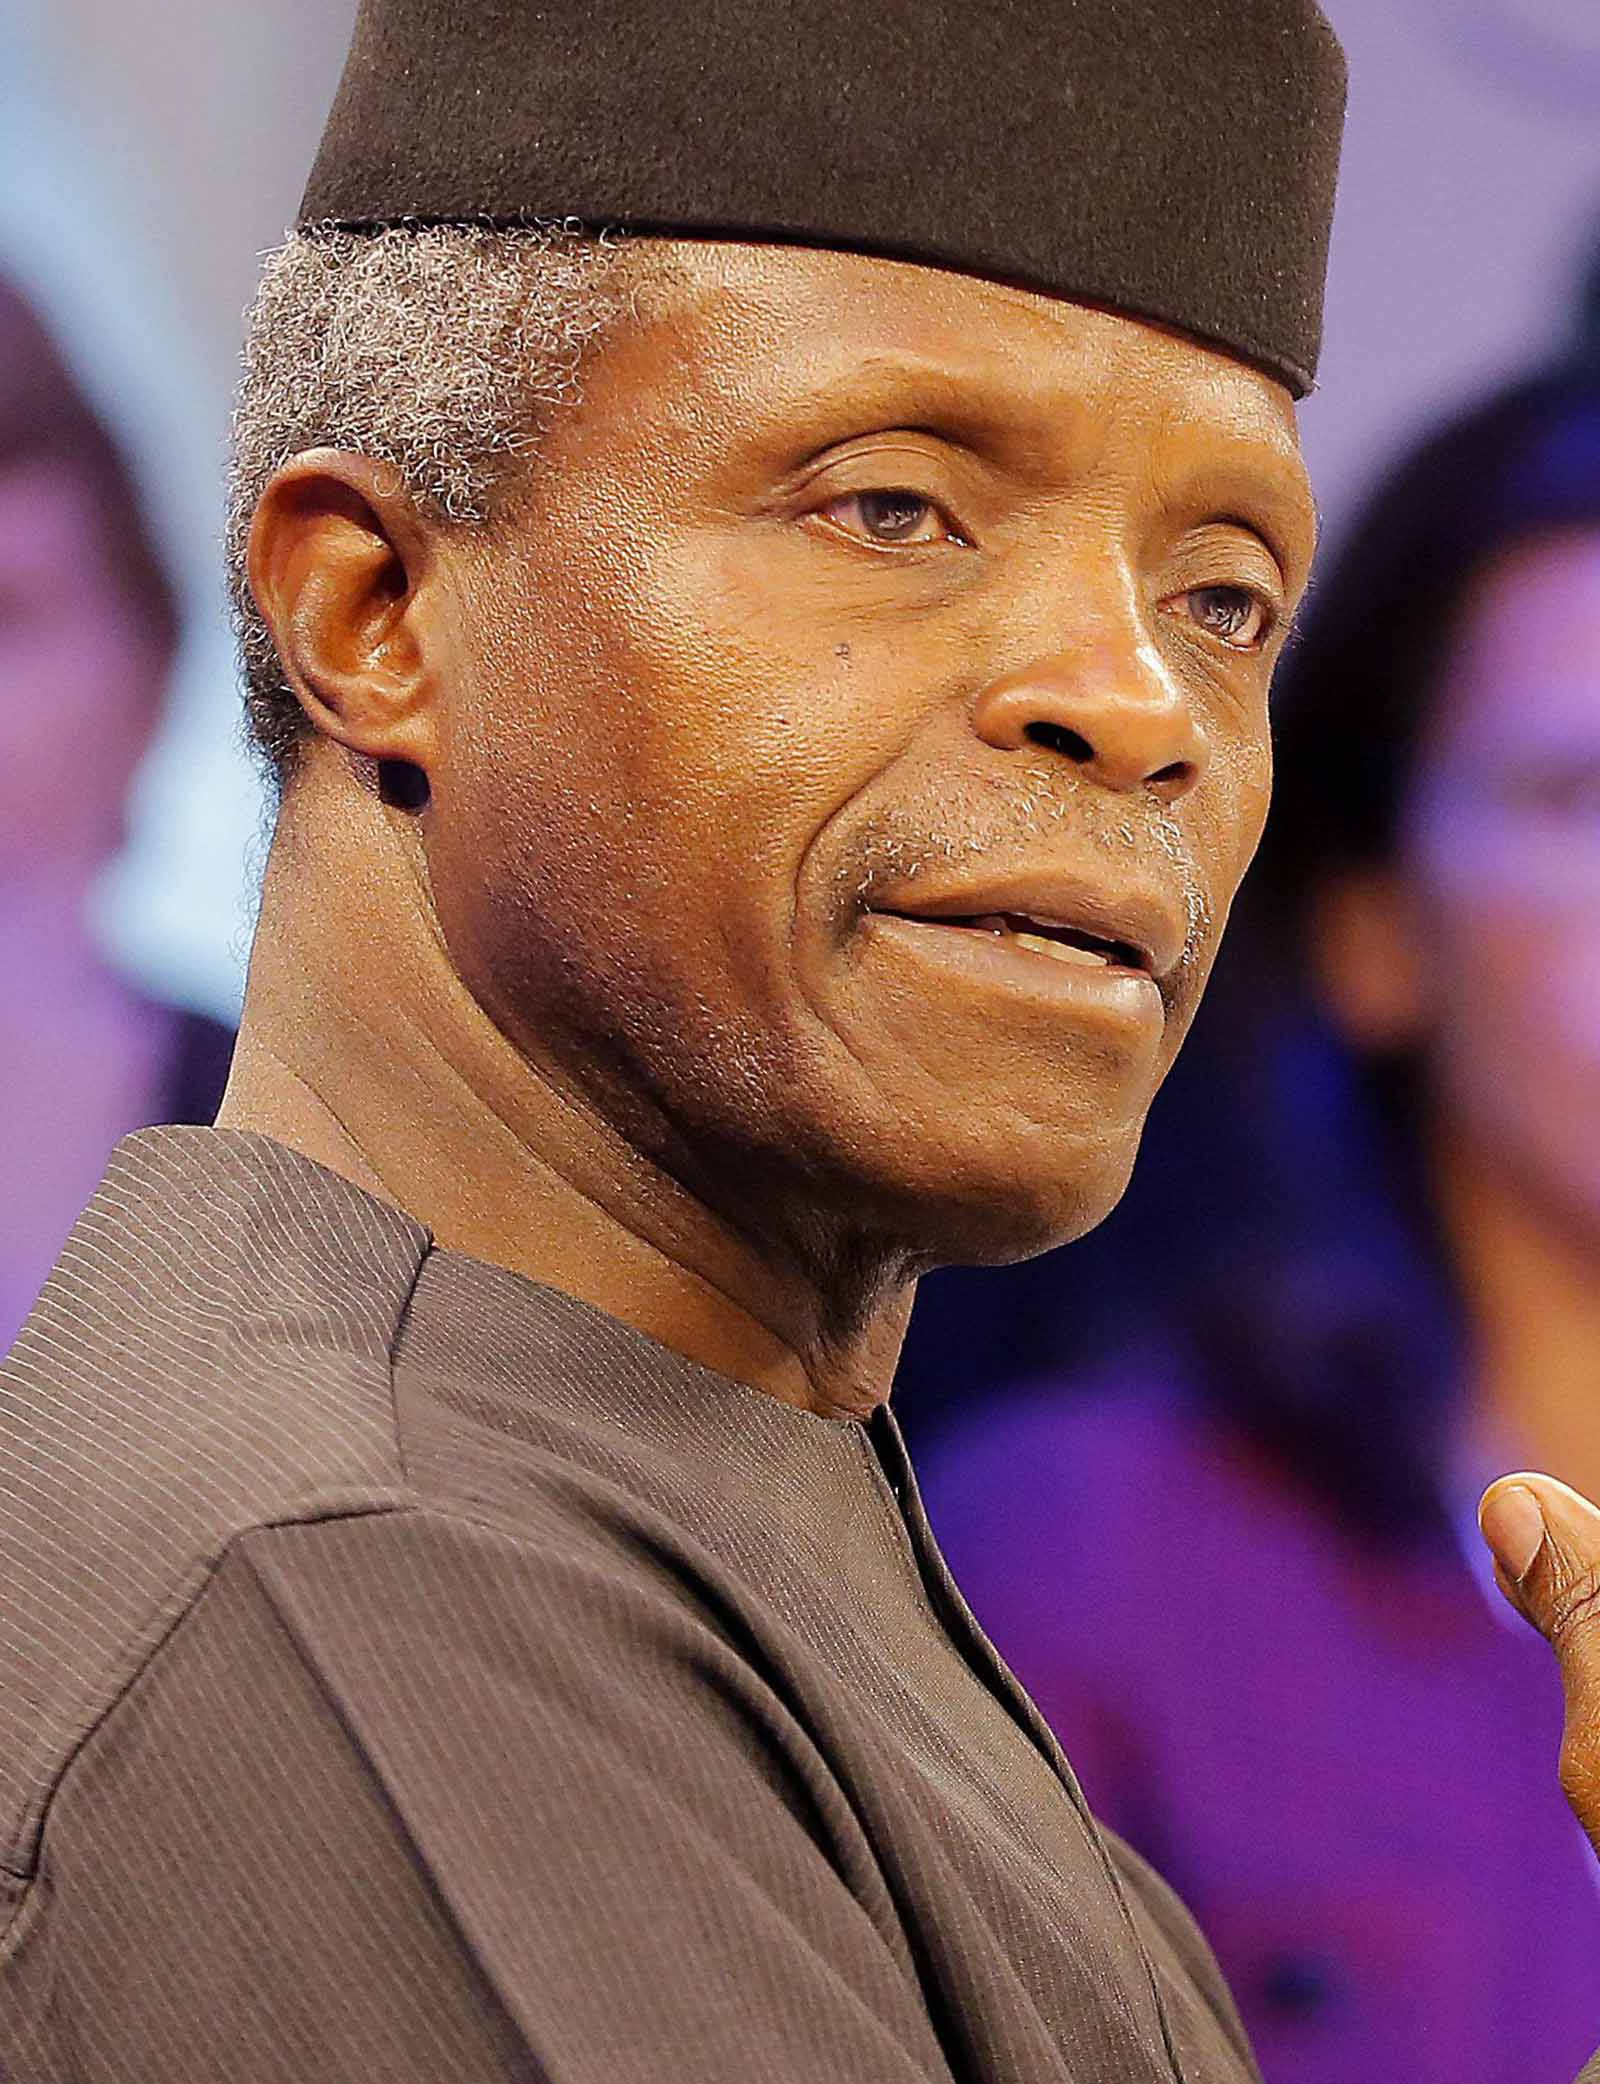 Vice President, Prof. Yemi Osinbajo at World Economic Forum, Davos 2016